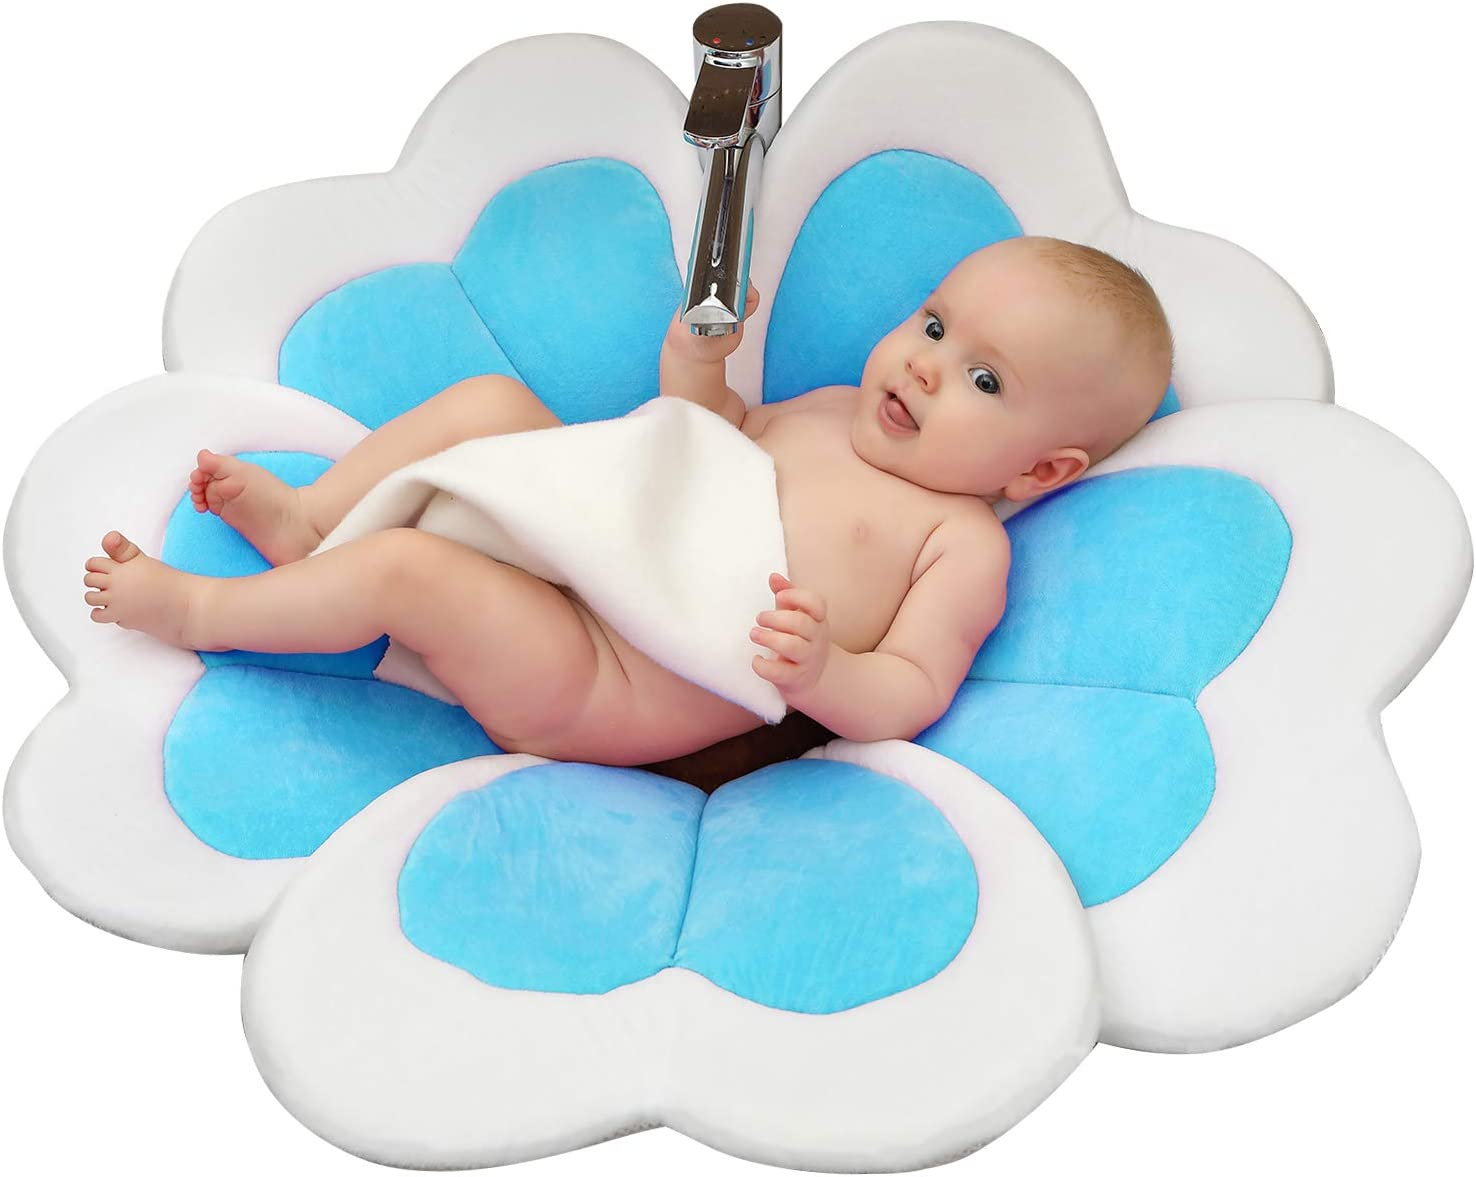 Blue KAKIBLIN Flower Baby Bath Comfort Baby Bath Pad for 0-6 Months Baby Bath Support Lounger